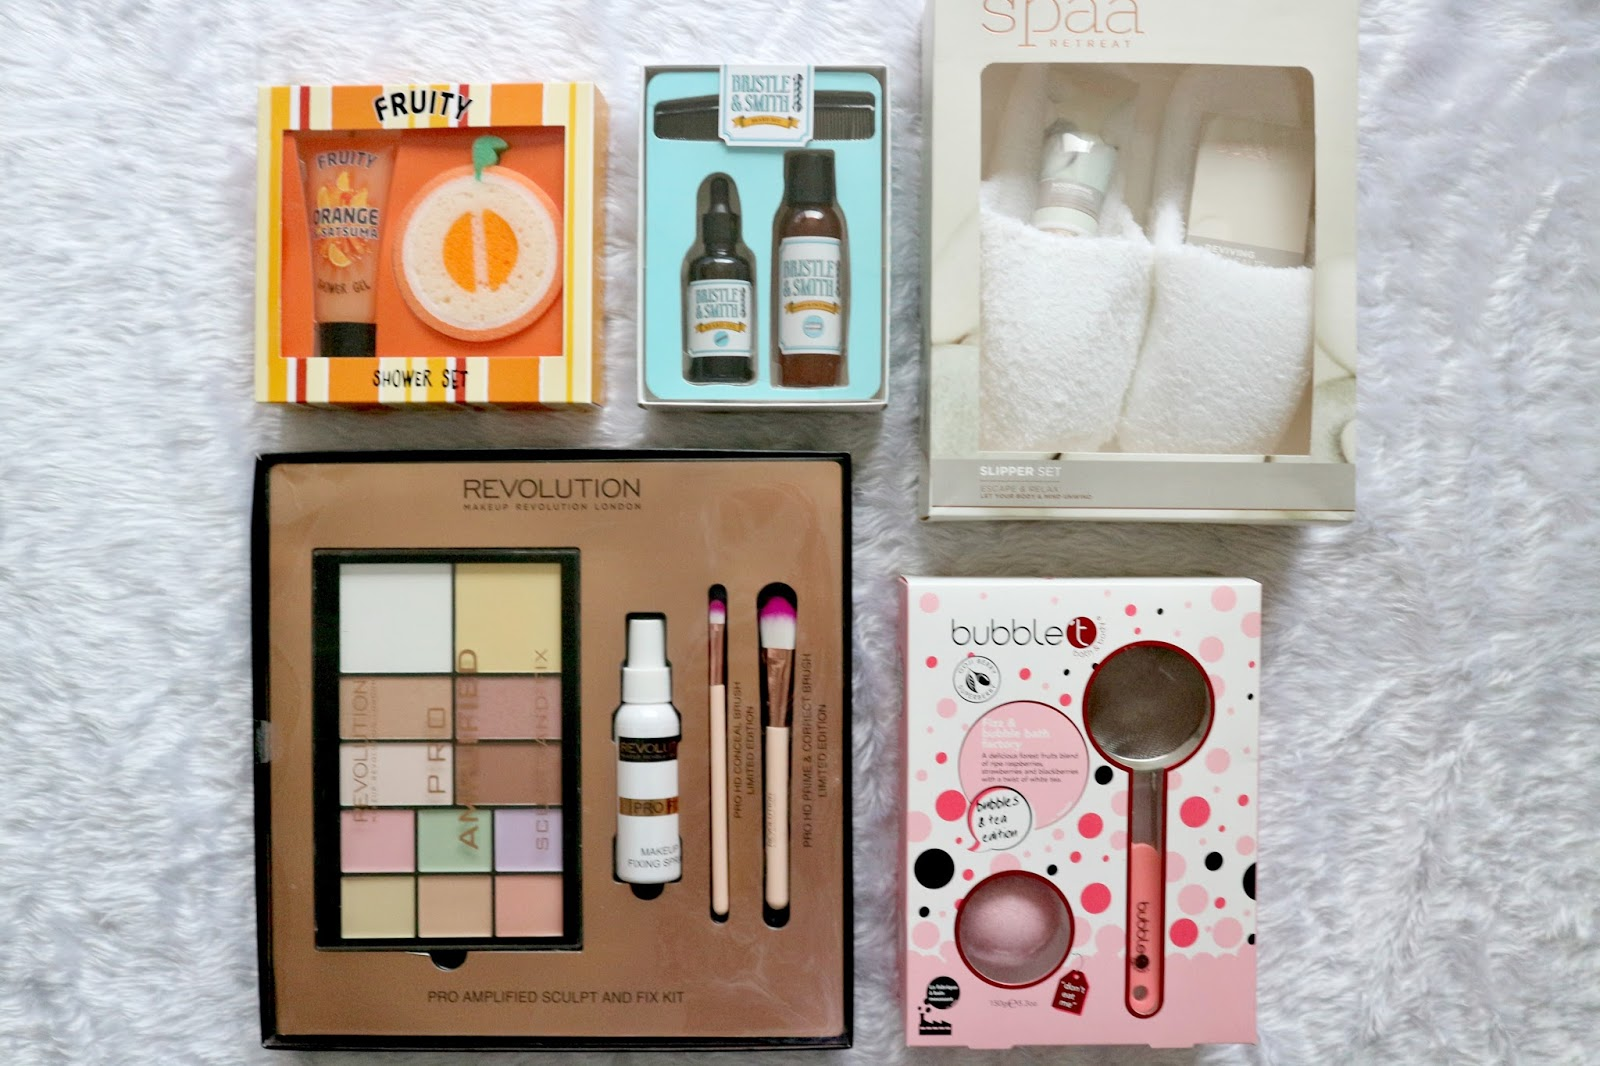 The Best Of Beauty Gift Guide (+ A Superdrug Giveaway) | Ellis Tuesday